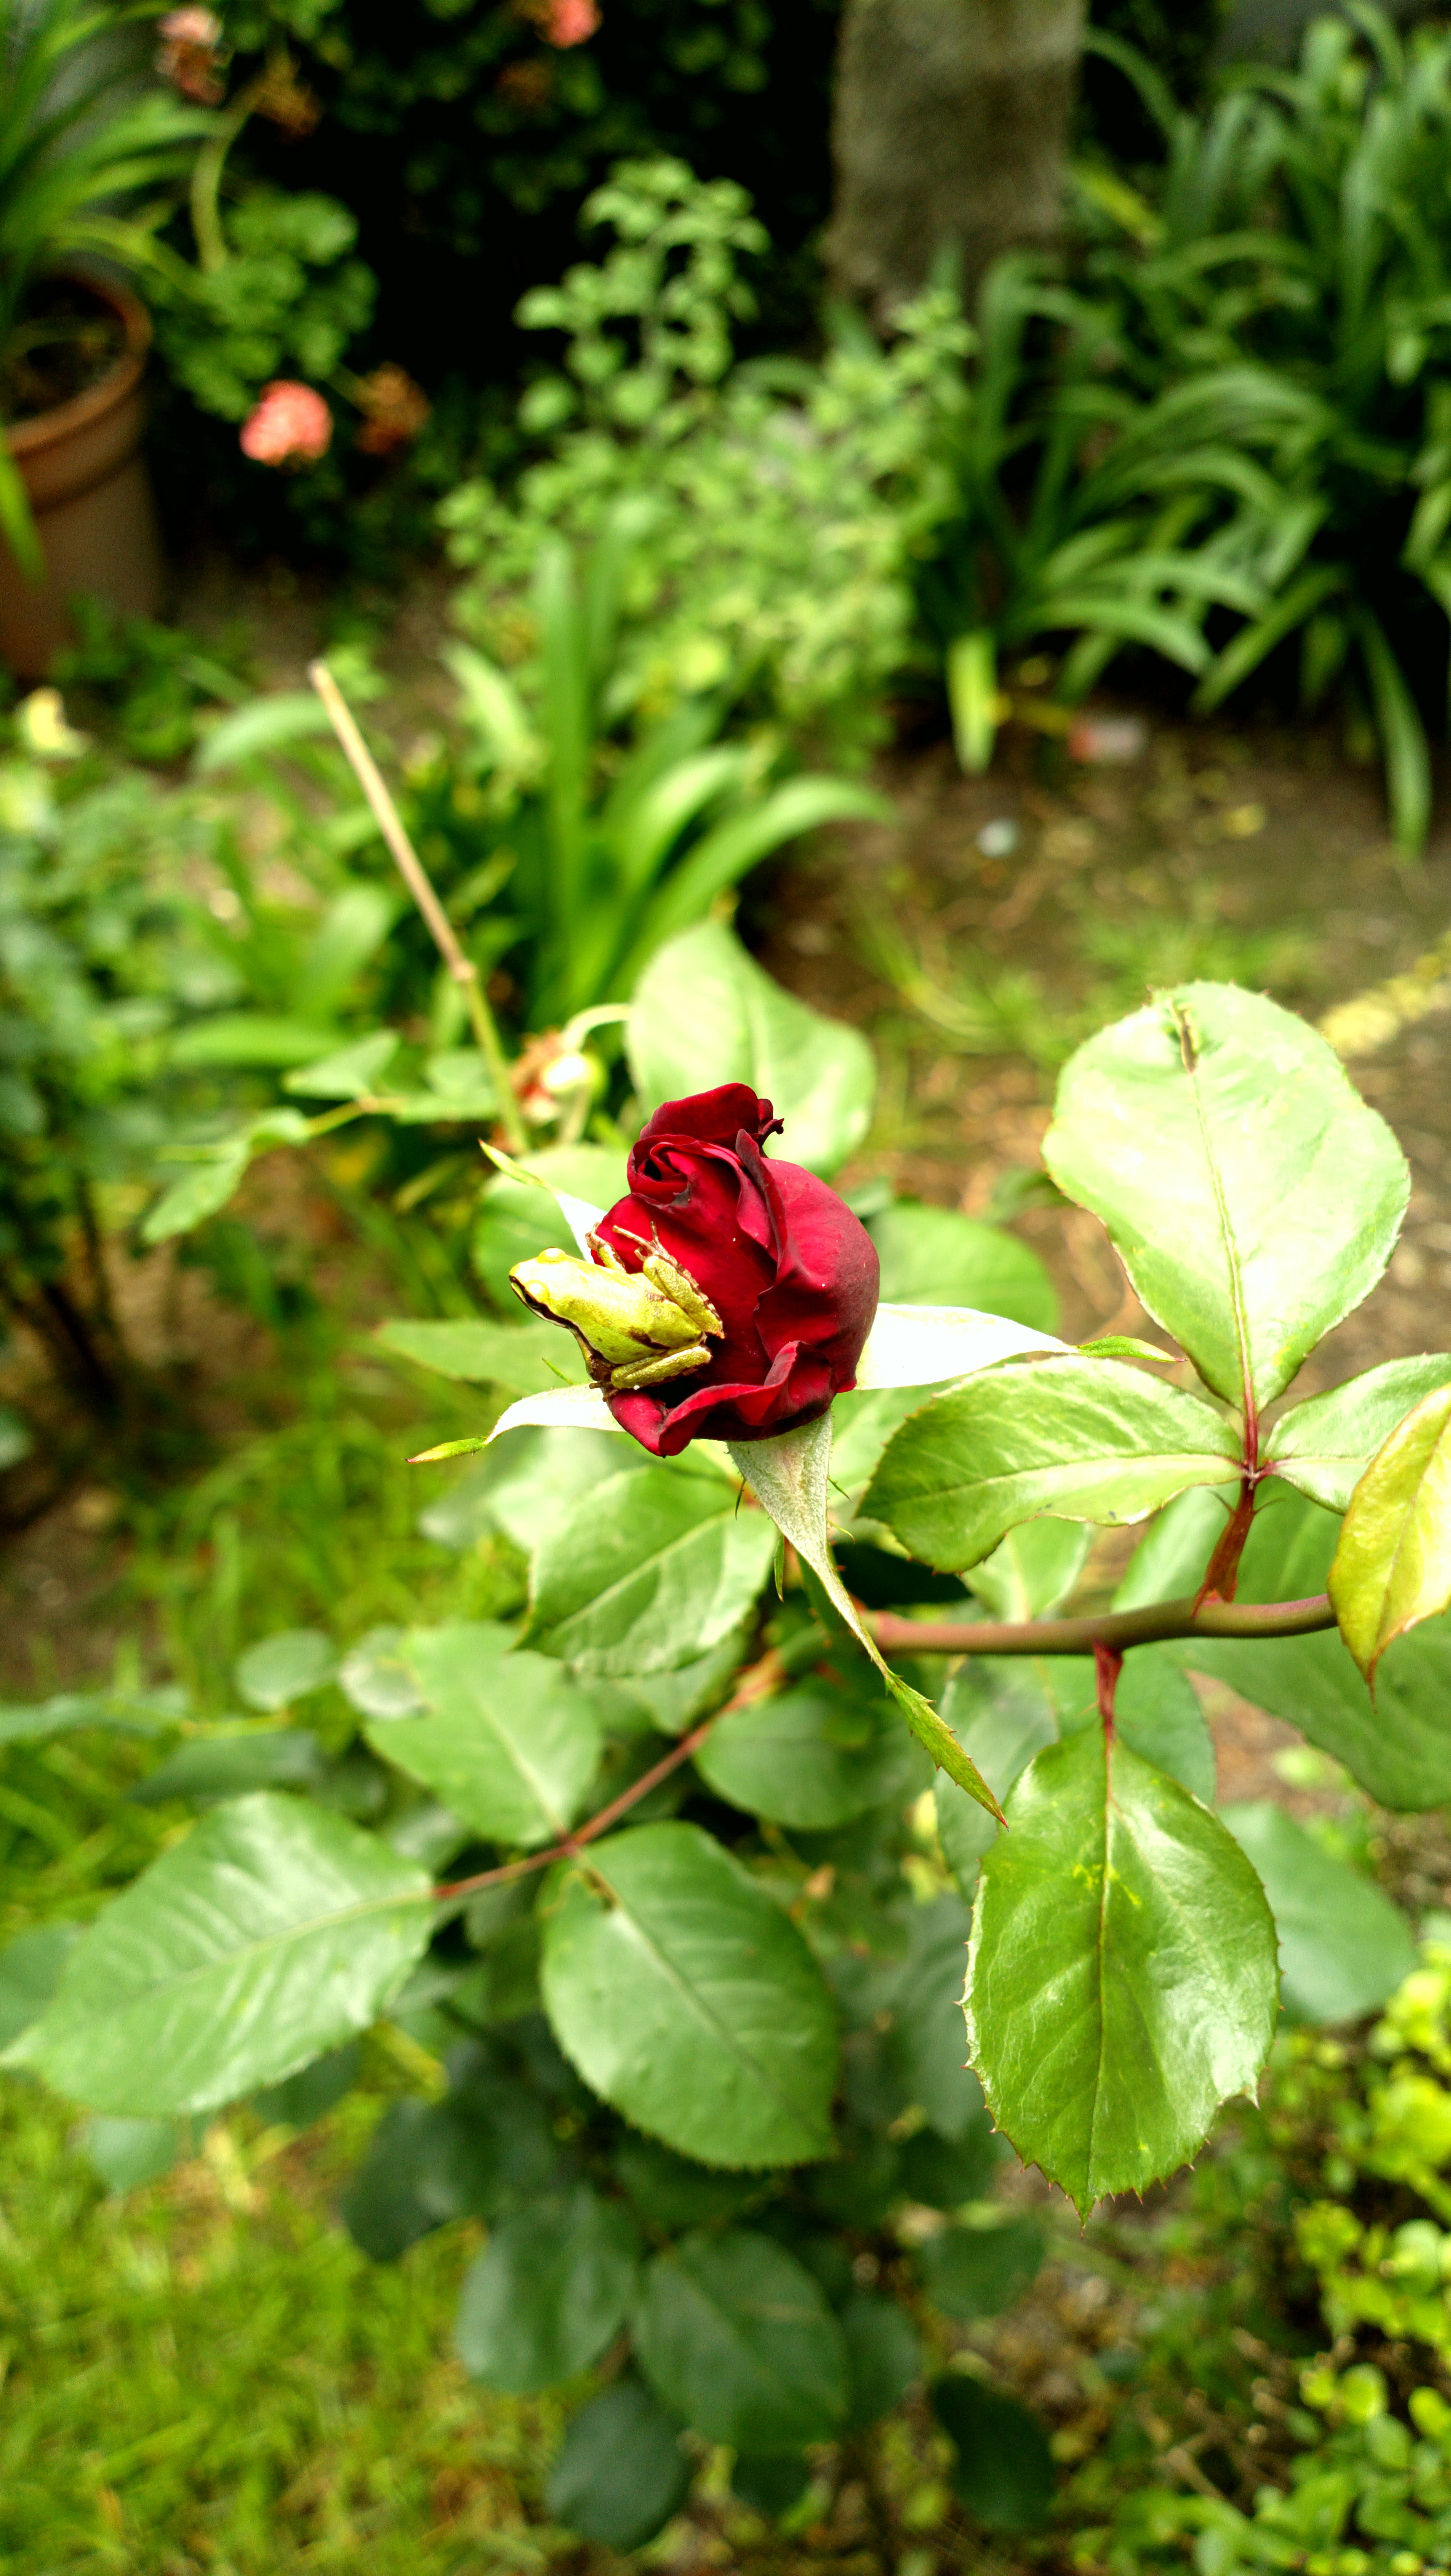 Free stock photo of garden flower, nature, red roses, rose